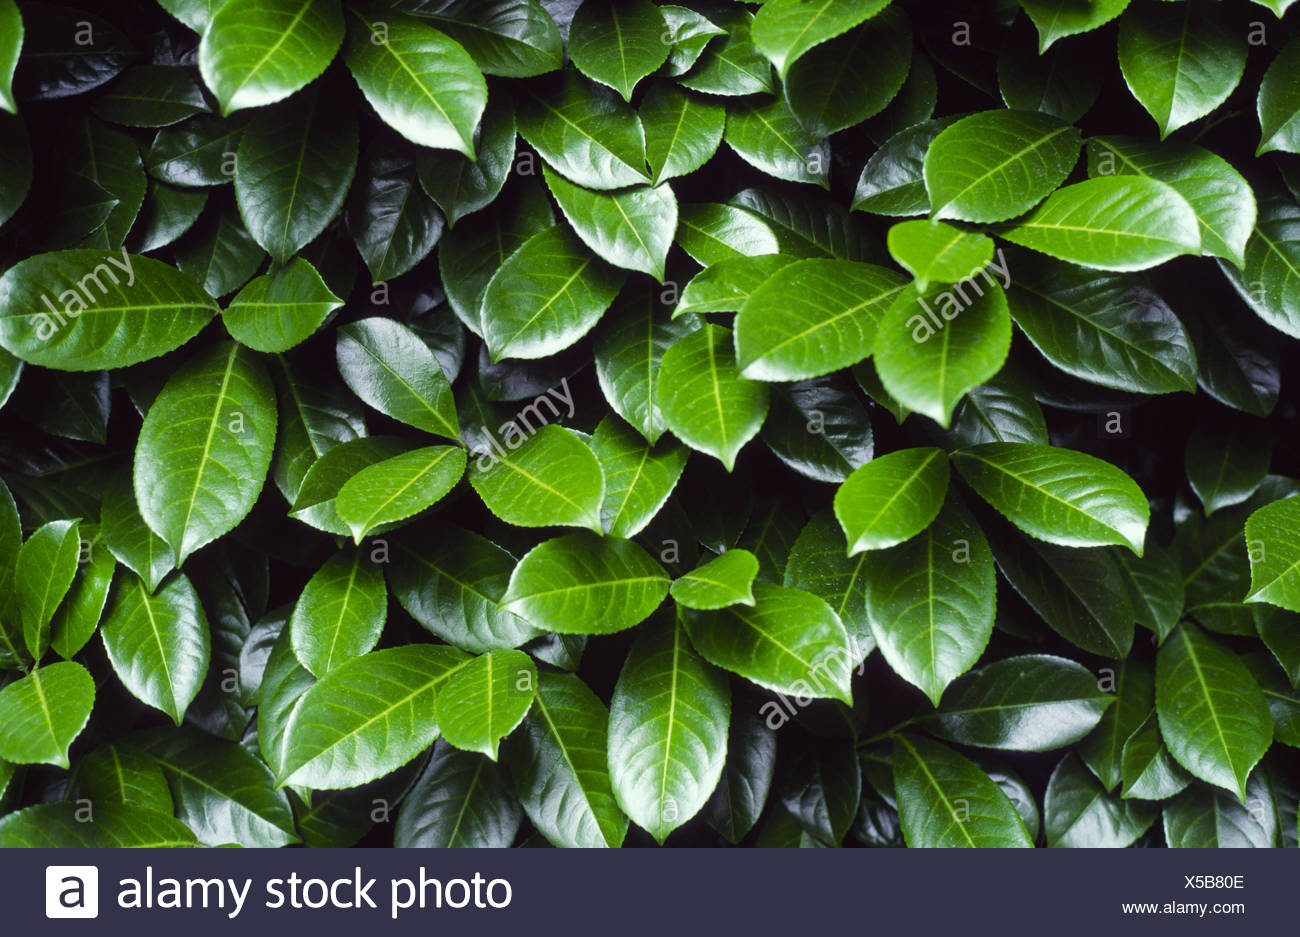 Cherry laurel (Prunus laurocerasus) leaves - Stock Image